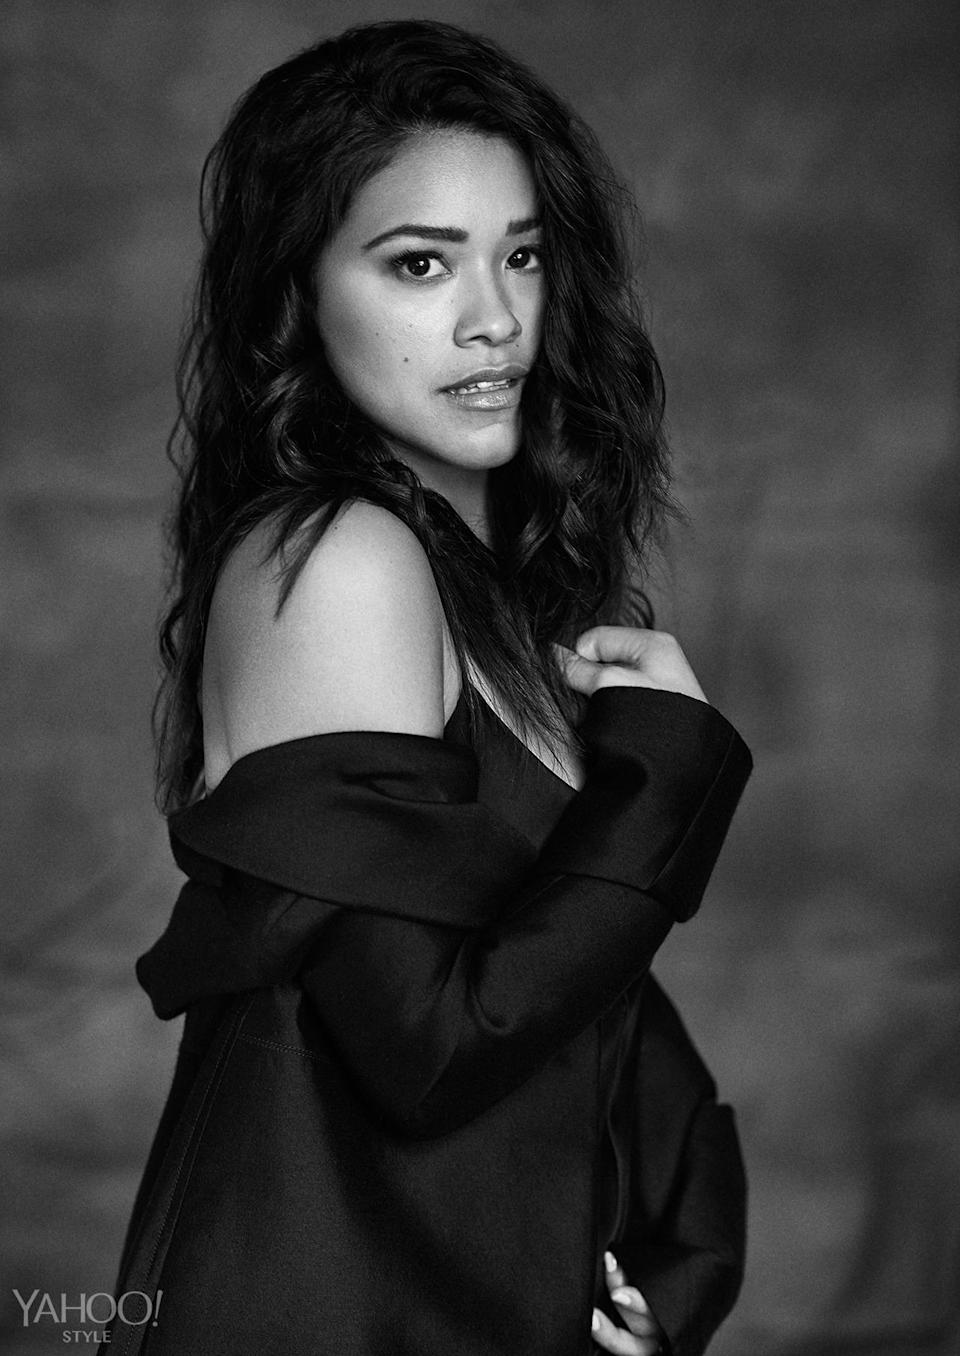 """<p>In <i>Annihilation,</i> Rodriguez stars with Natalie Portman, Jennifer Jason Leigh, and Tessa Thompson, who had a breakout role in <i>Creed</i>. """"I'm so excited to work with those women. I just think that they are beyond powerful,"""" she says. </p><p><i><b>Equipment </b>Raquel silk-charmeuse maxi dress, $400, <a href=""""https://www.net-a-porter.com/us/en/product/638286/Equipment/racquel-silk-charmeuse-maxi-dress"""" rel=""""nofollow noopener"""" target=""""_blank"""" data-ylk=""""slk:Net-A-Porter"""" class=""""link rapid-noclick-resp"""">Net-A-Porter</a>. <b>Hermès </b><a href=""""http://usa.hermes.com/"""" rel=""""nofollow noopener"""" target=""""_blank"""" data-ylk=""""slk:wool coat"""" class=""""link rapid-noclick-resp"""">wool coat</a>, price upon request.</i><br></p>"""